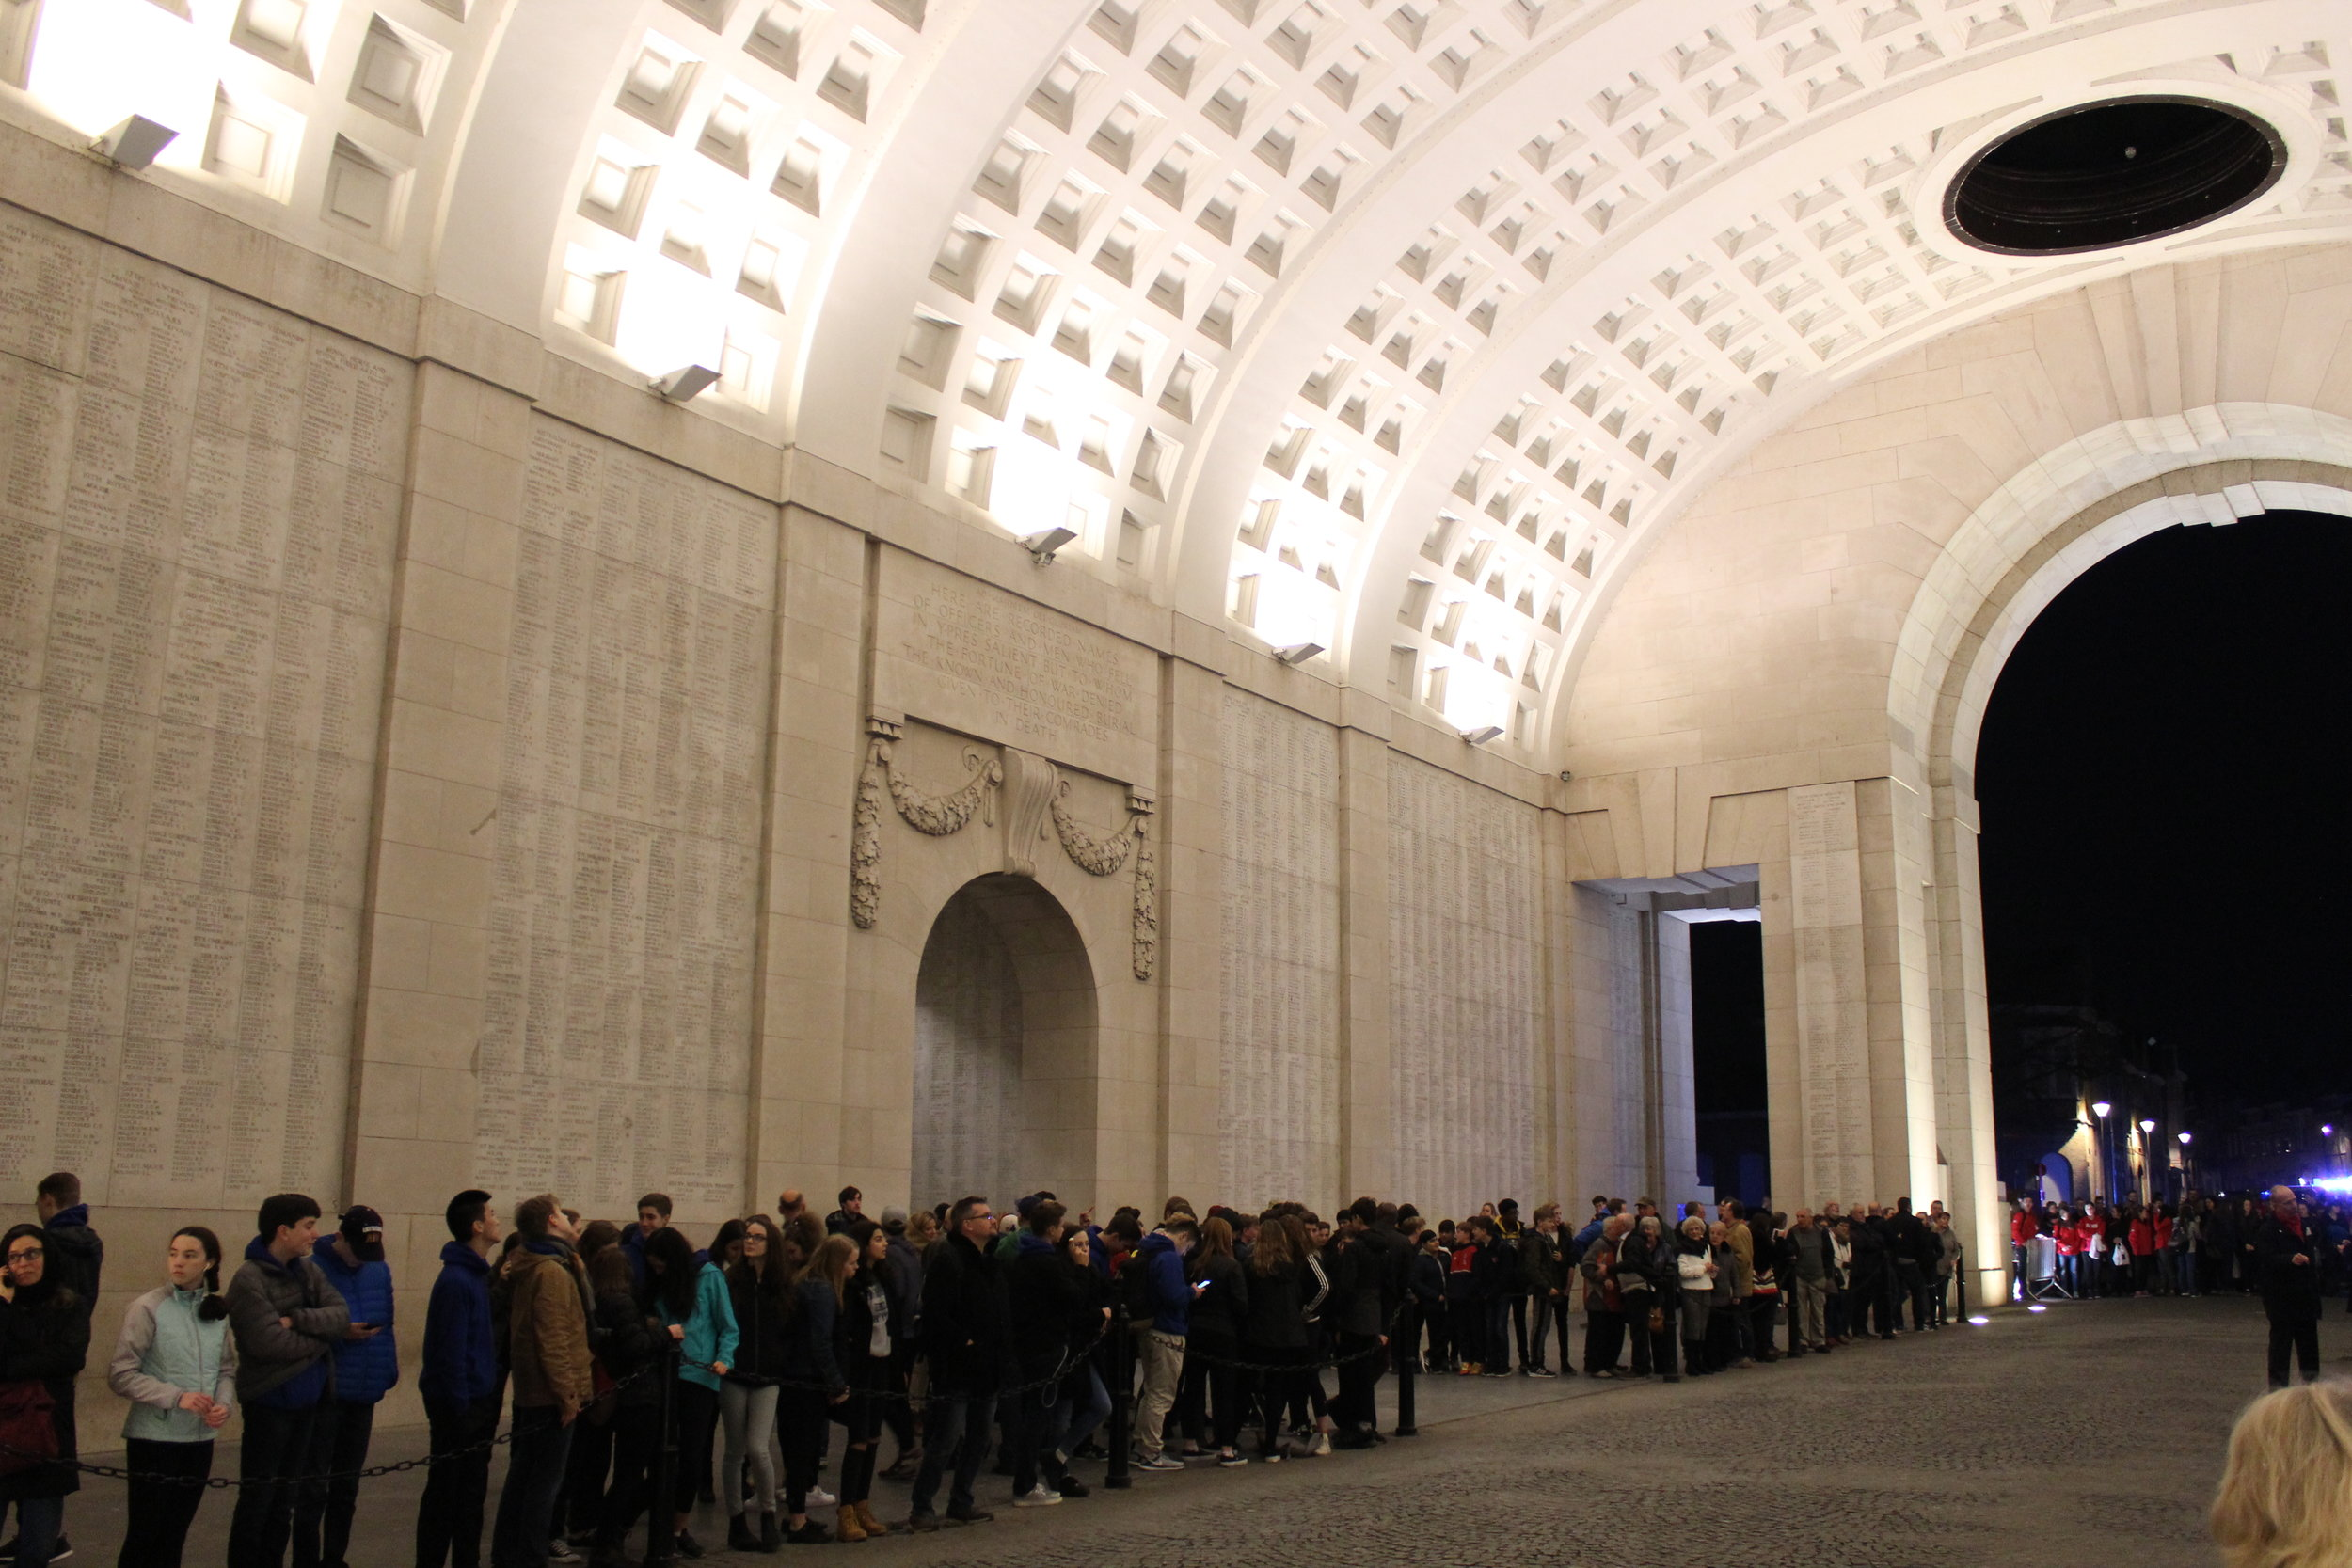 A crowd gathers for Menin Gate experience at 8PM, Ypres.